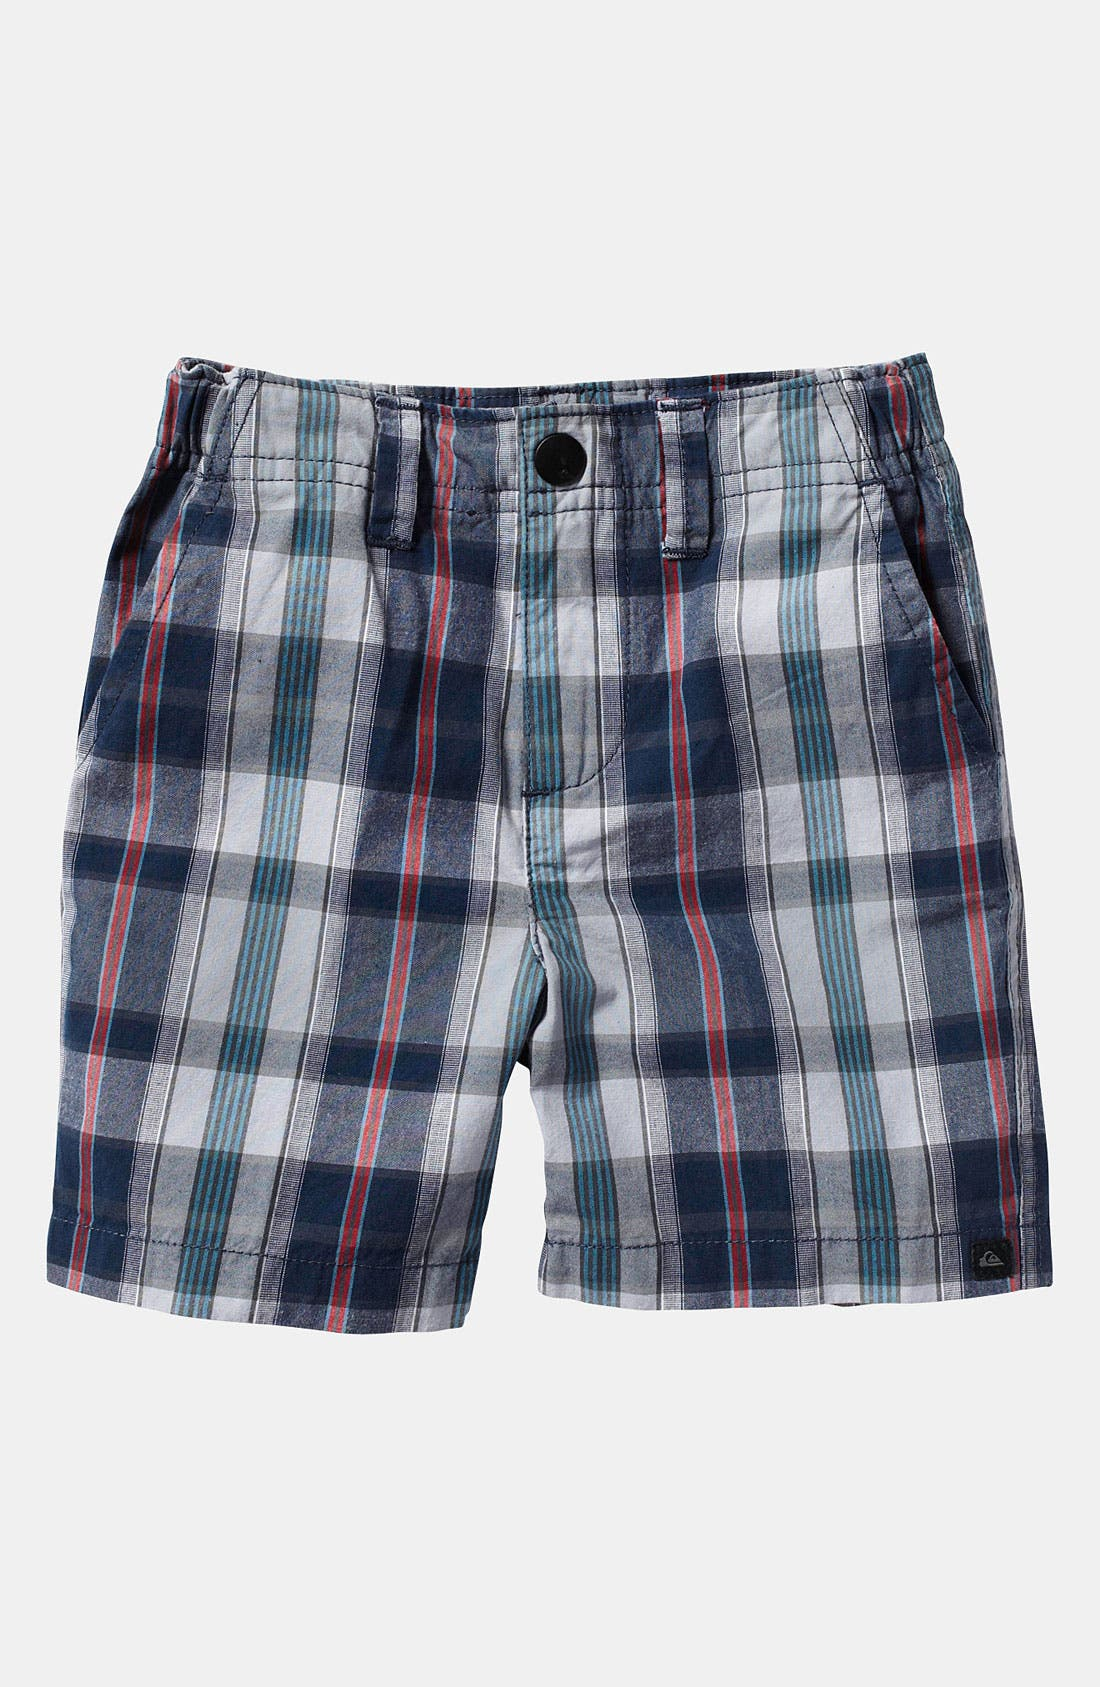 Main Image - Quiksilver 'Bookend' Shorts (Infant)